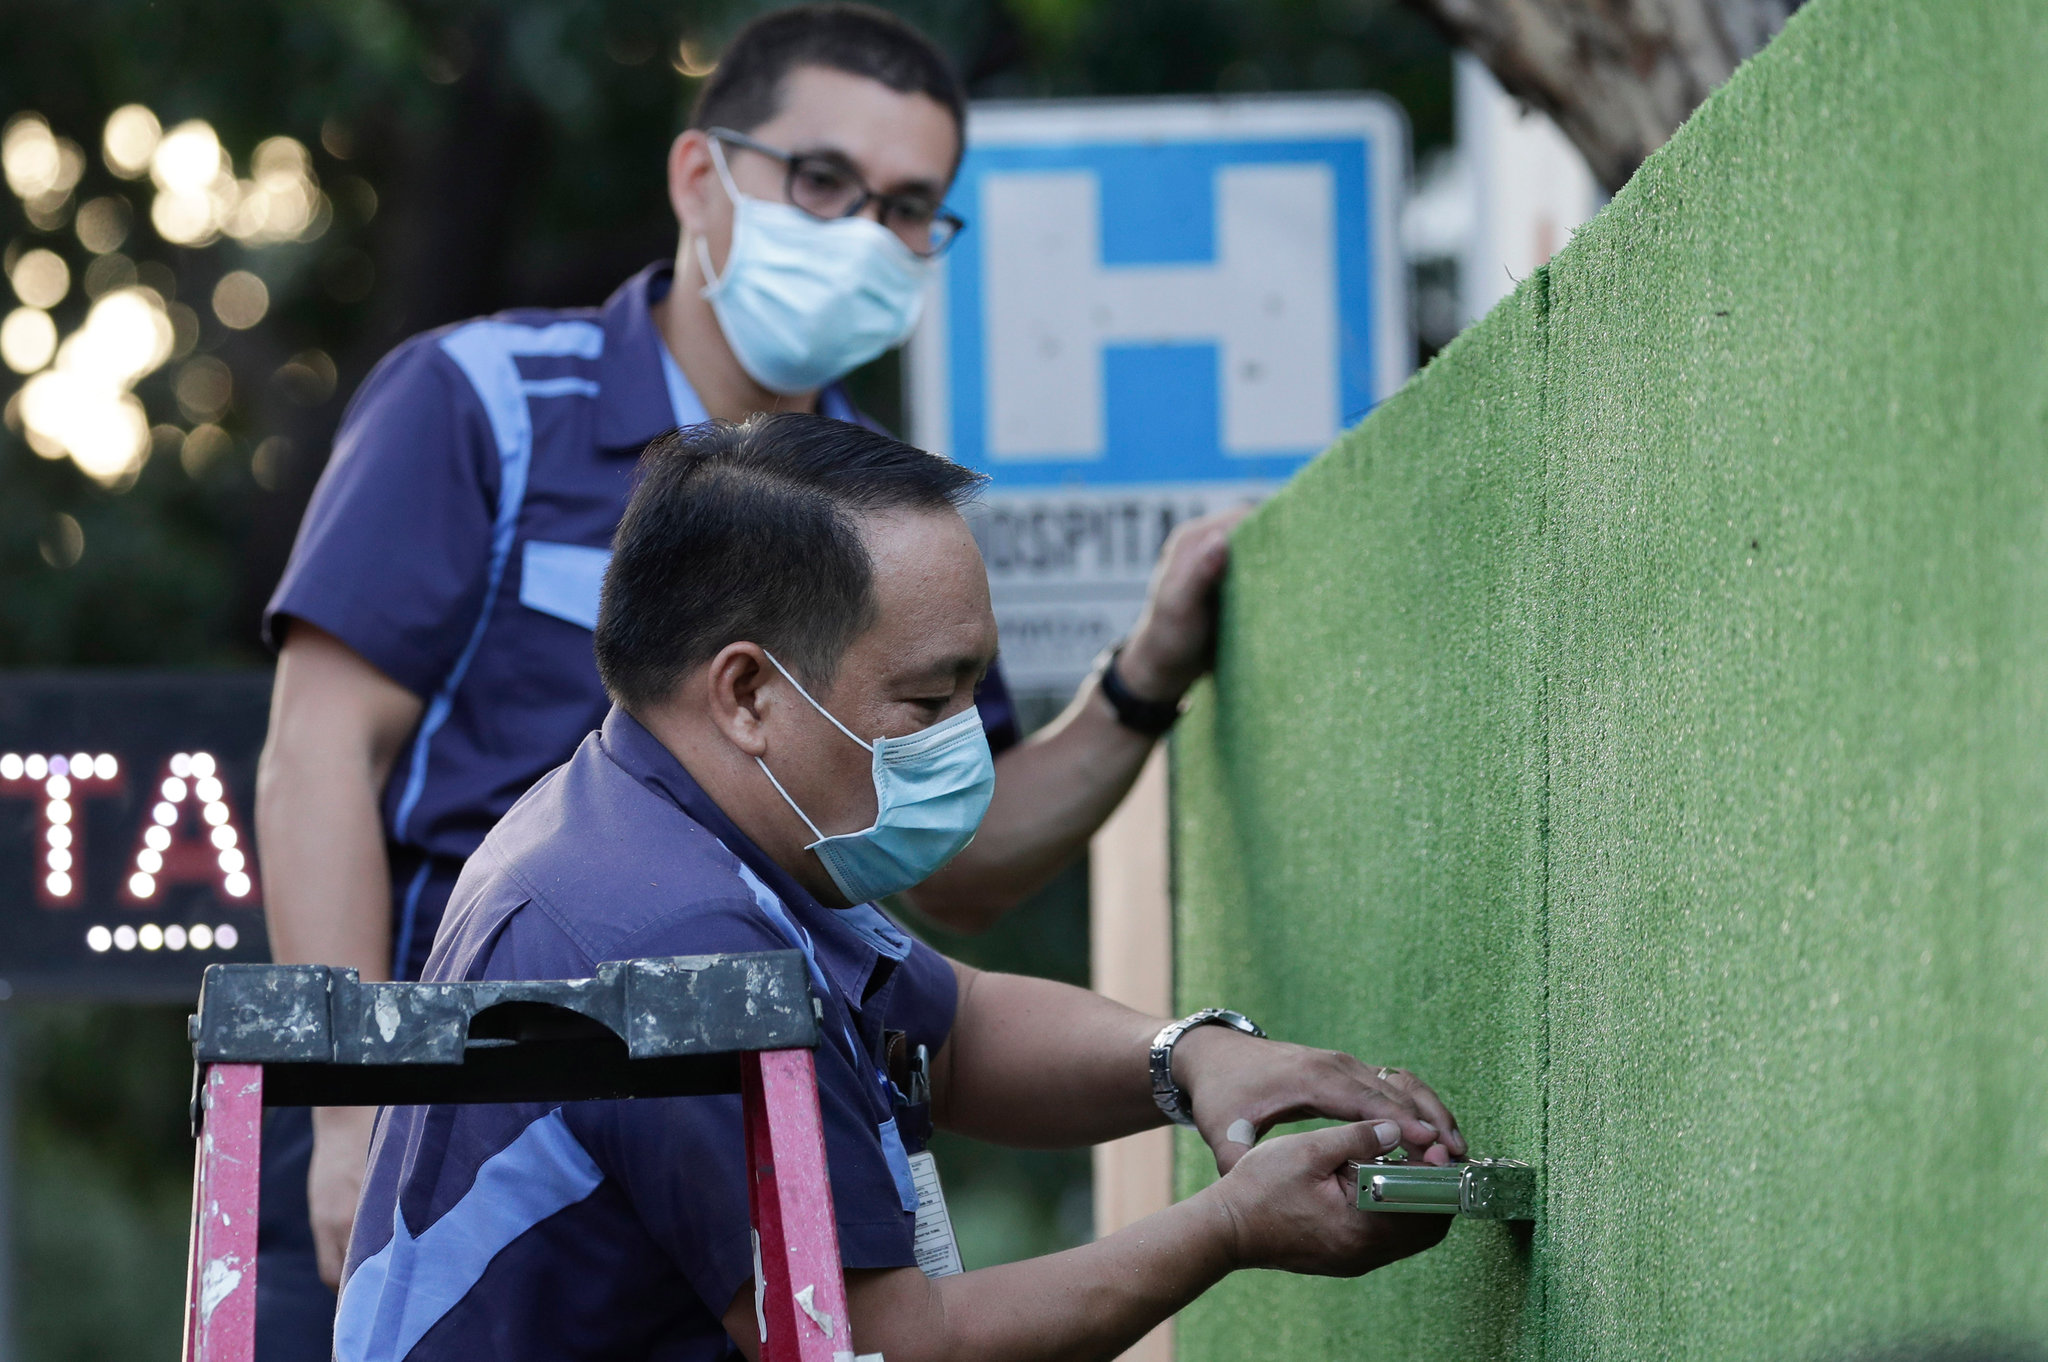 Workers set up a quarantine area for people with symptoms of the coronavirus outside a hospital in Manila